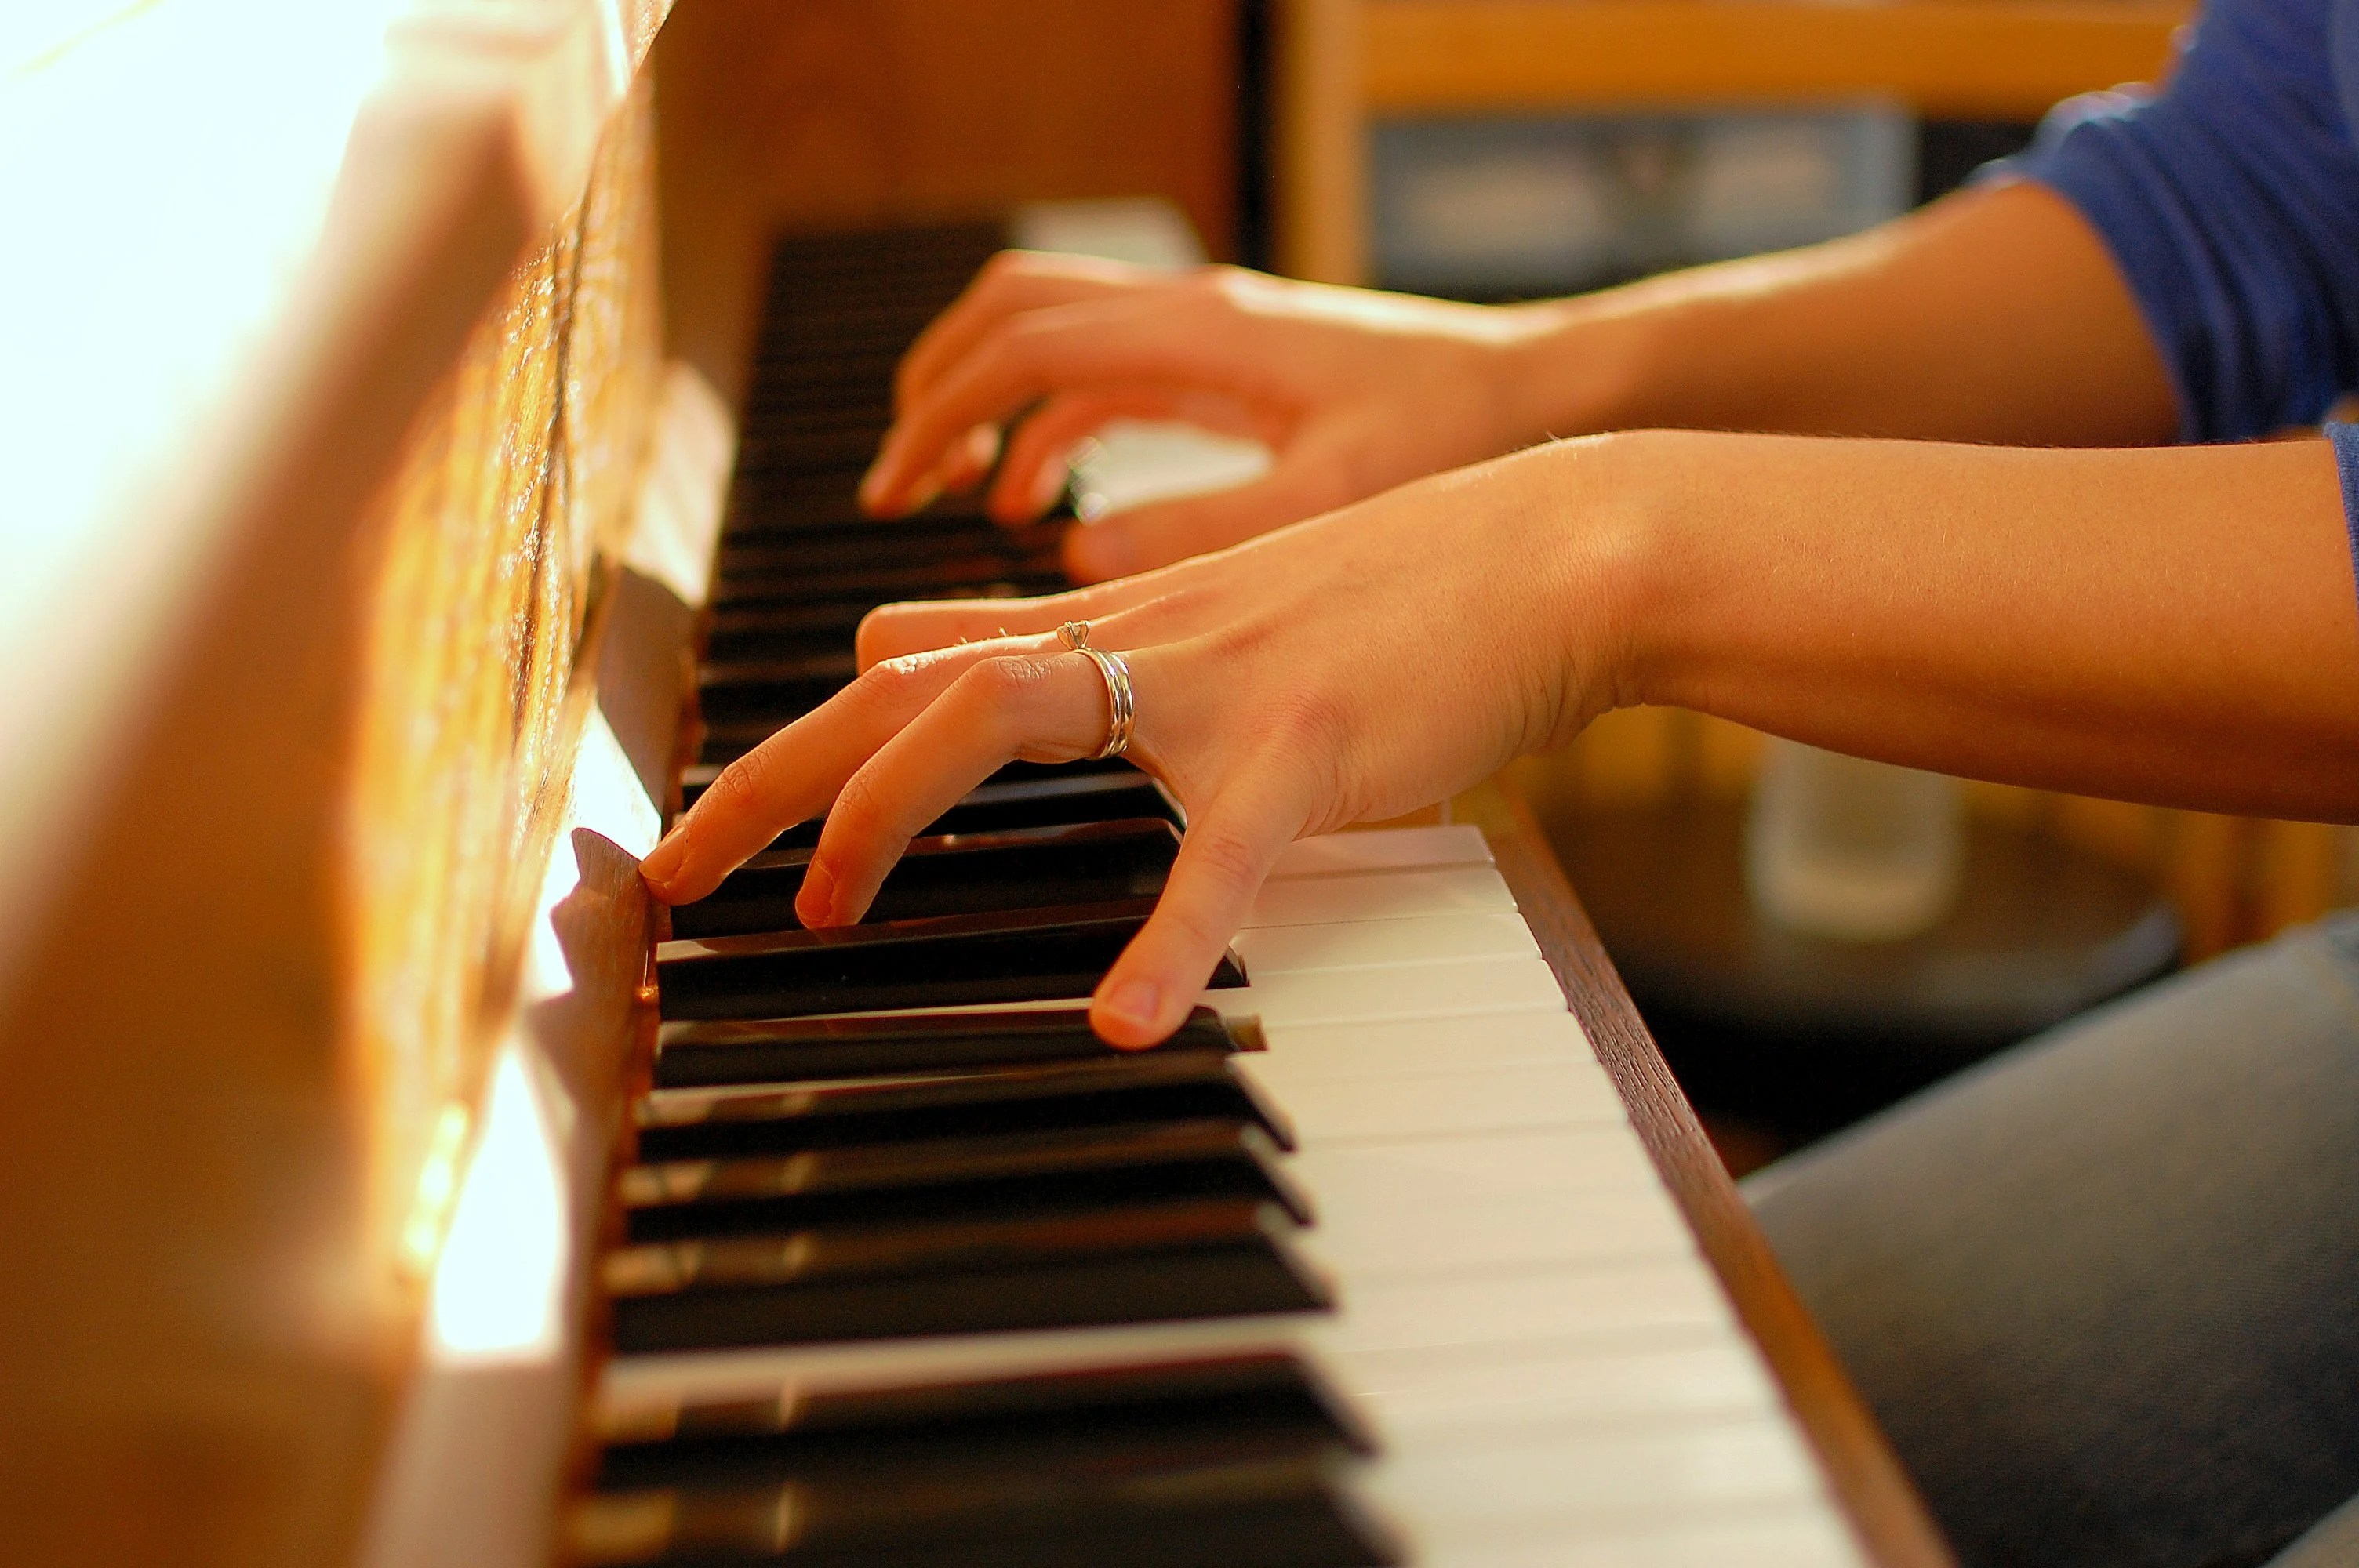 When a piece of music is played at the wrong tempo it is difficult to recognise because our brain uses rhythm to help make sense of sounds. Image credit - flickr/ Brian Richardson, licensed under CC BY 2.0